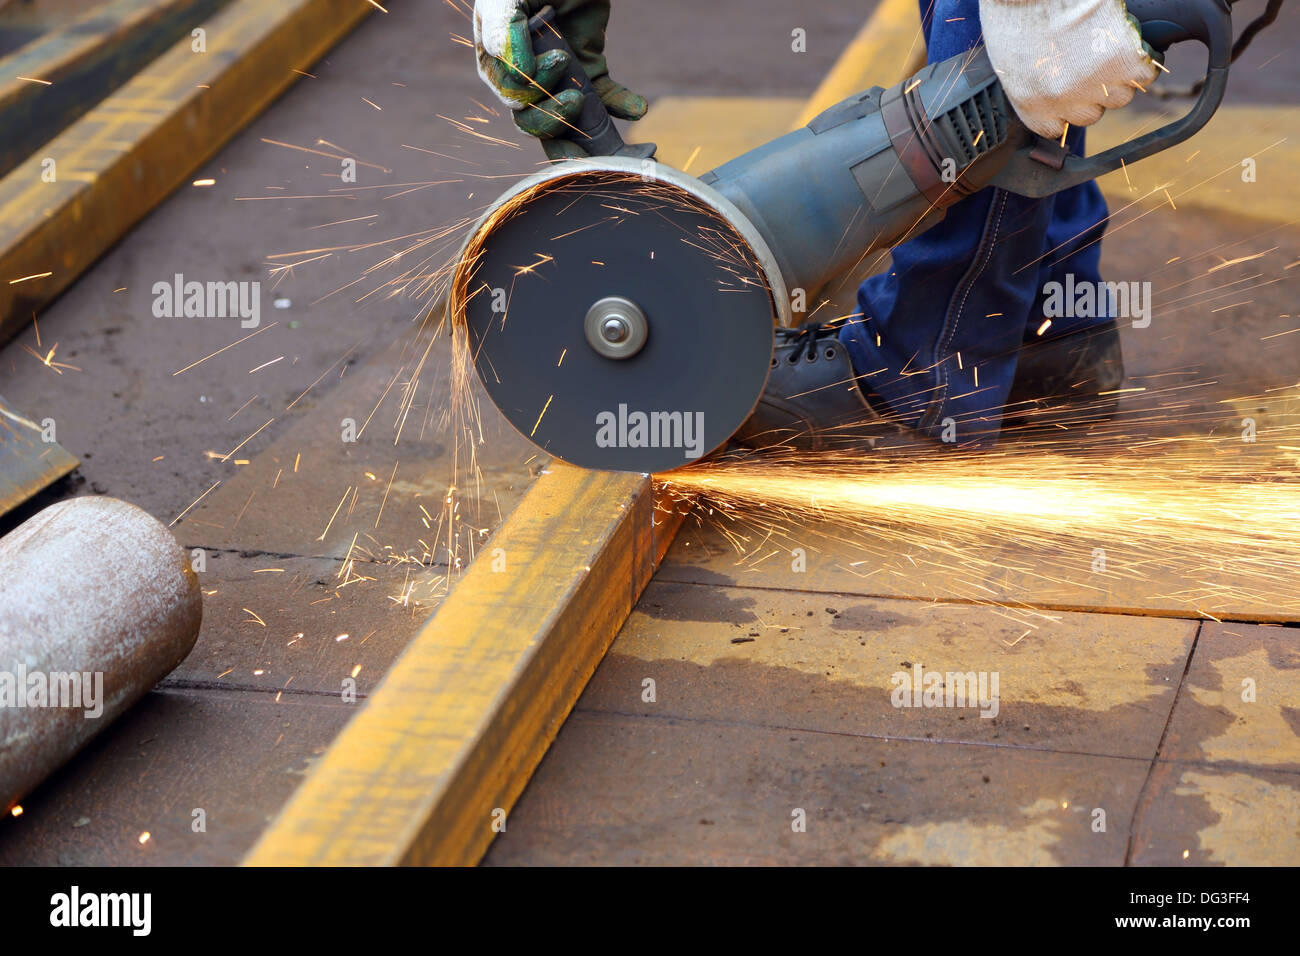 worker cuts metal profile using the hand tool - Stock Image